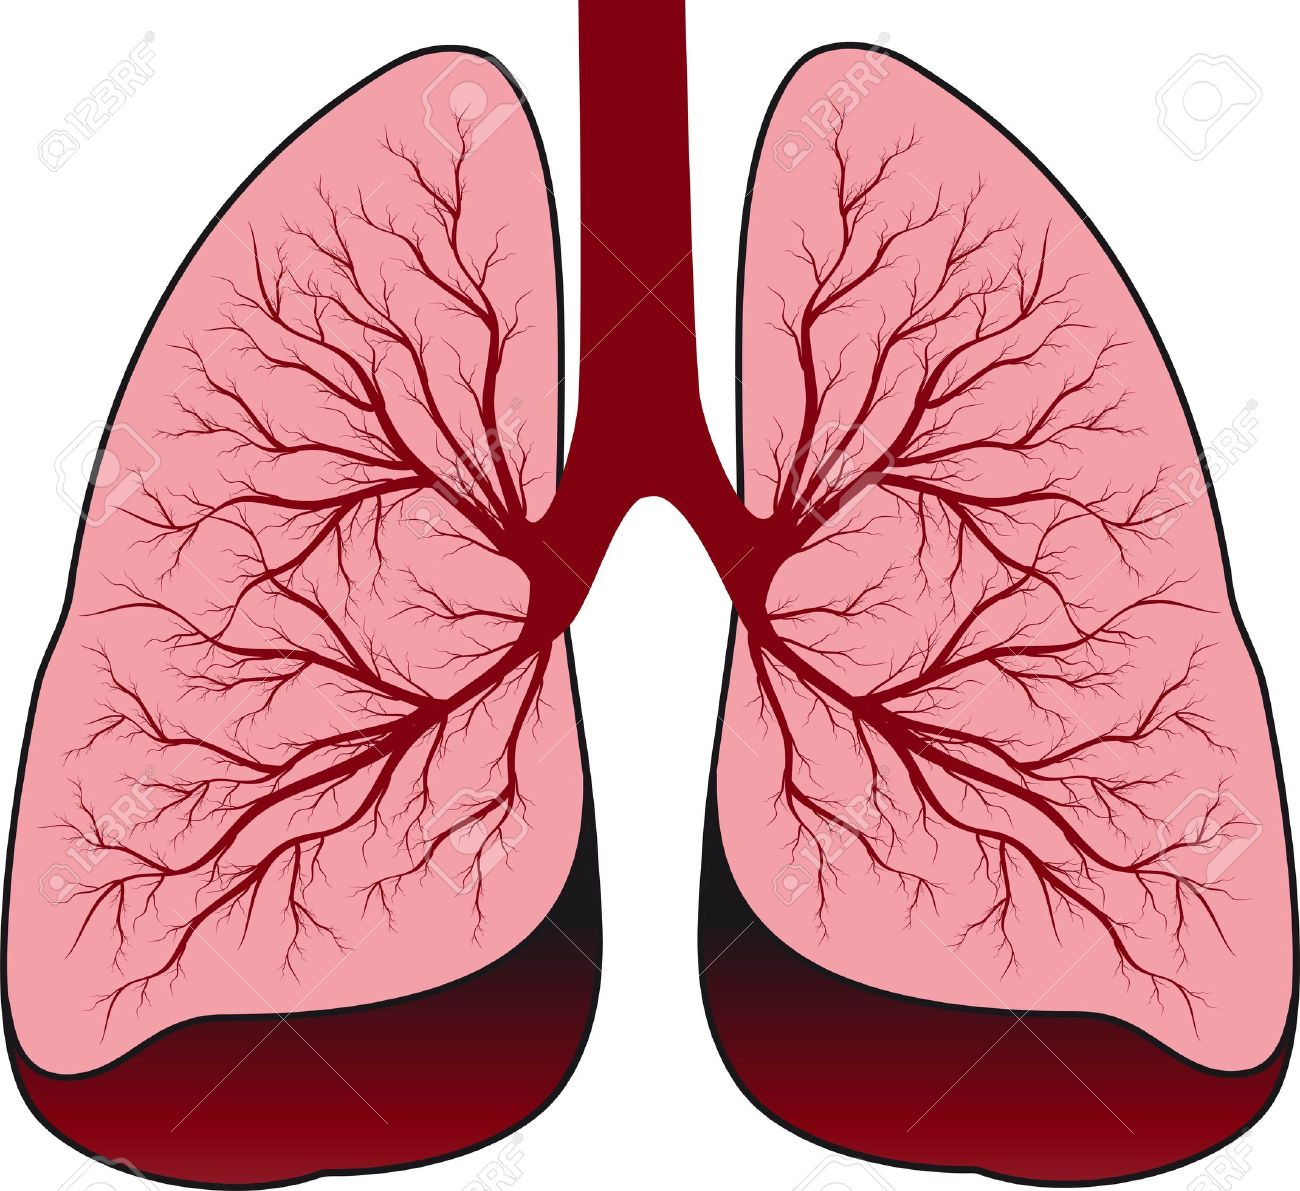 bronchial system human lungs royalty free cliparts, vectors, and, Cephalic Vein